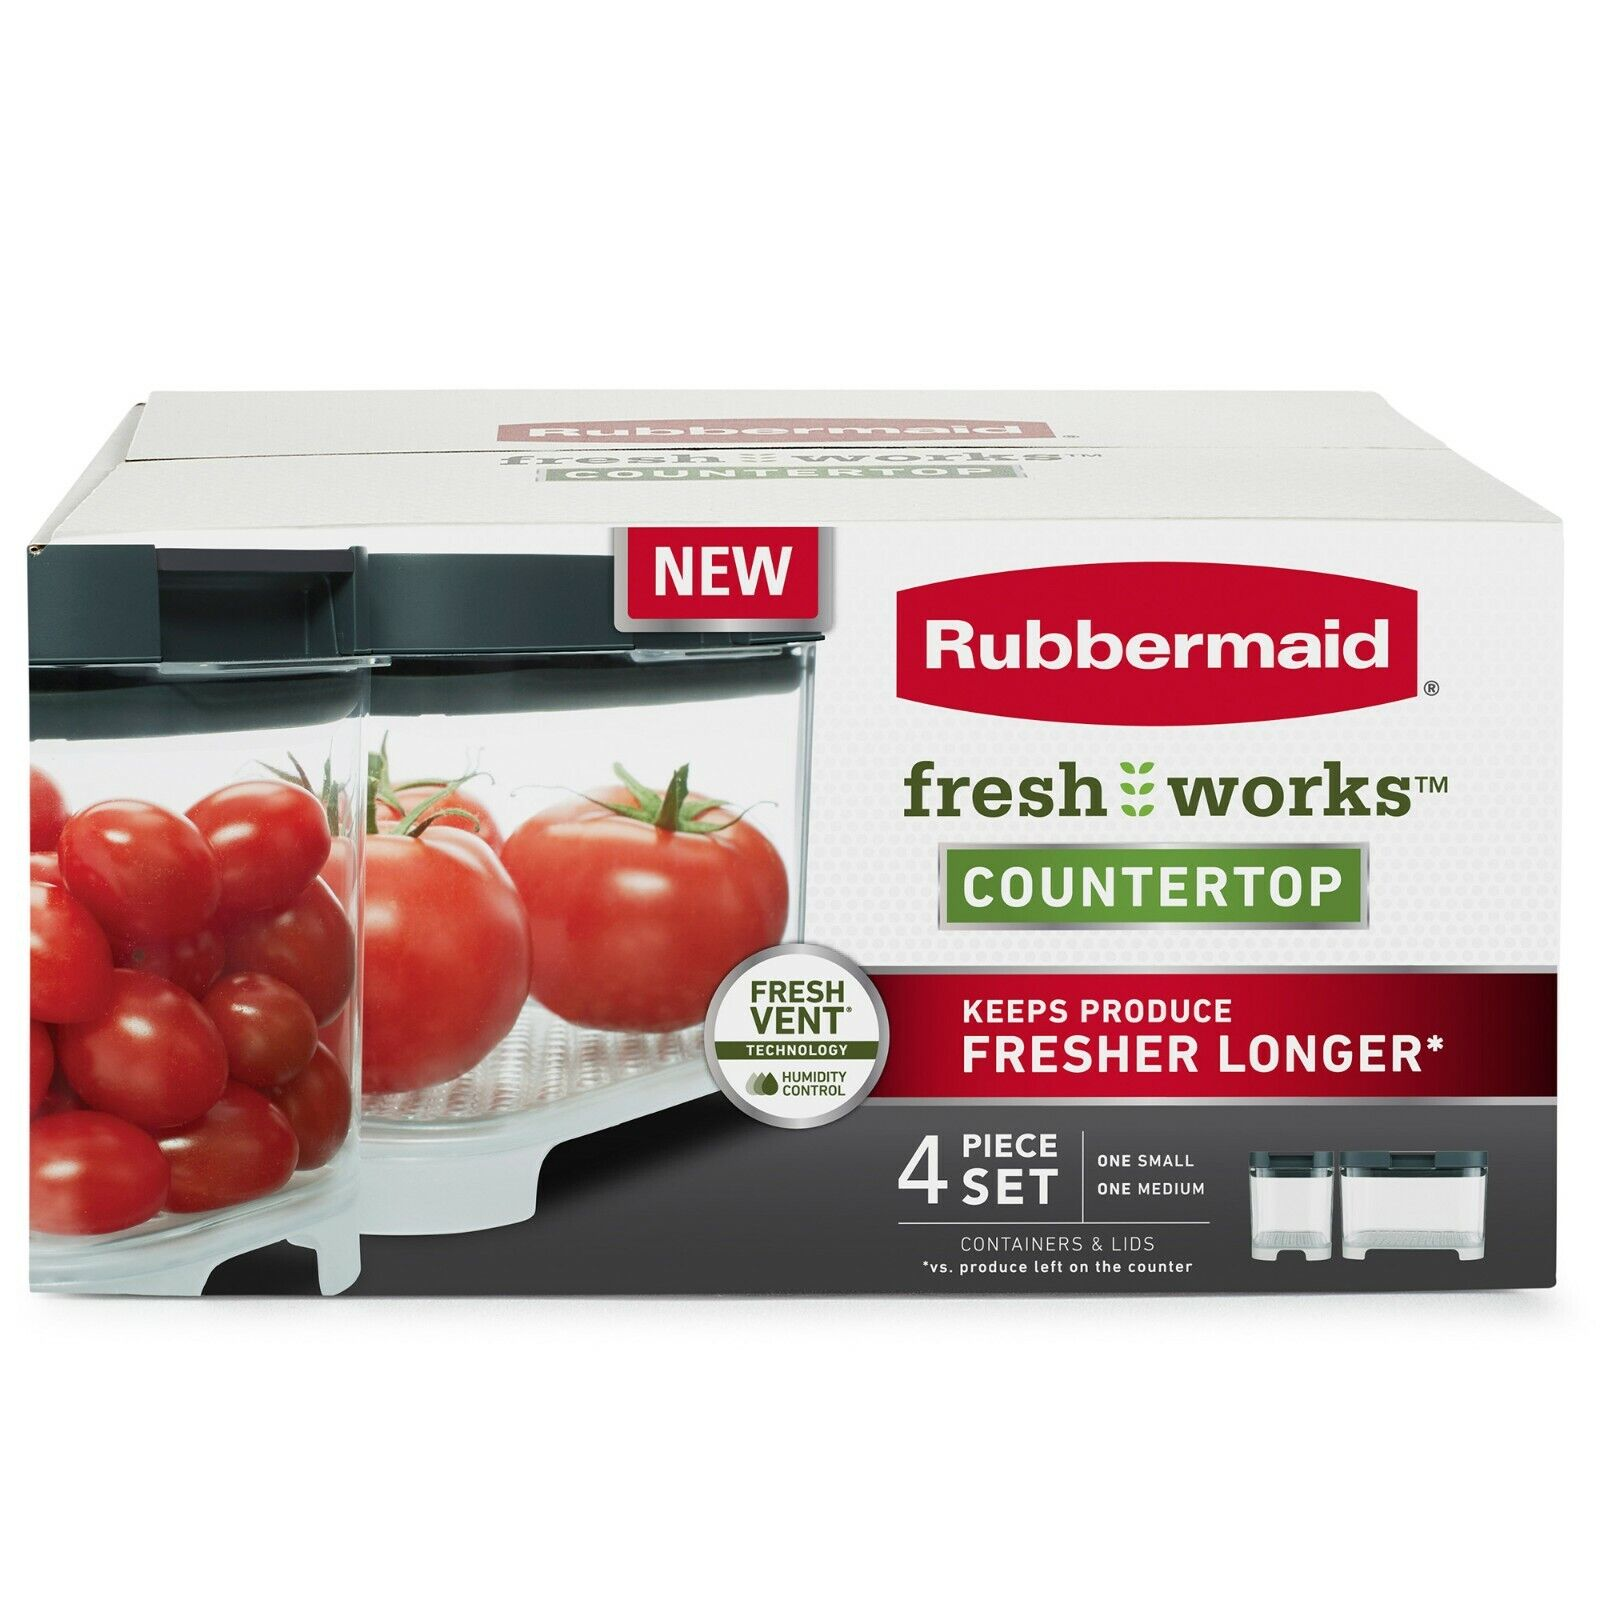 Rubbermaid: FreshWorks Counter Top - 4 Piece Set 2 Container